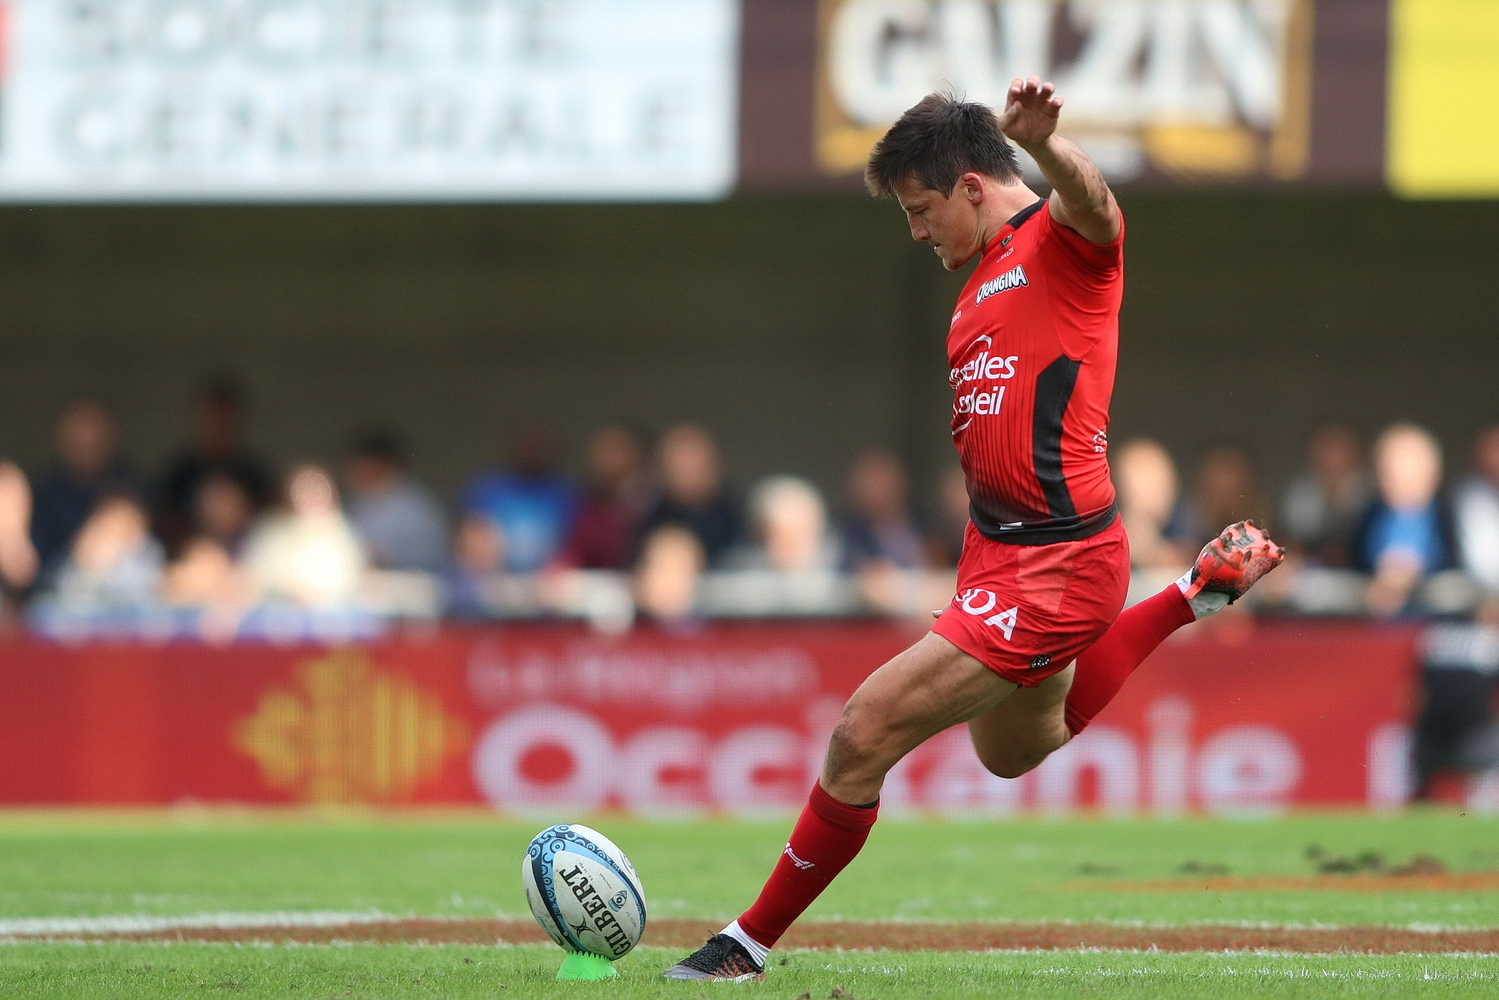 Rugby - Coupes d'Europe - Champions Cup : Trévise-Toulon en direct